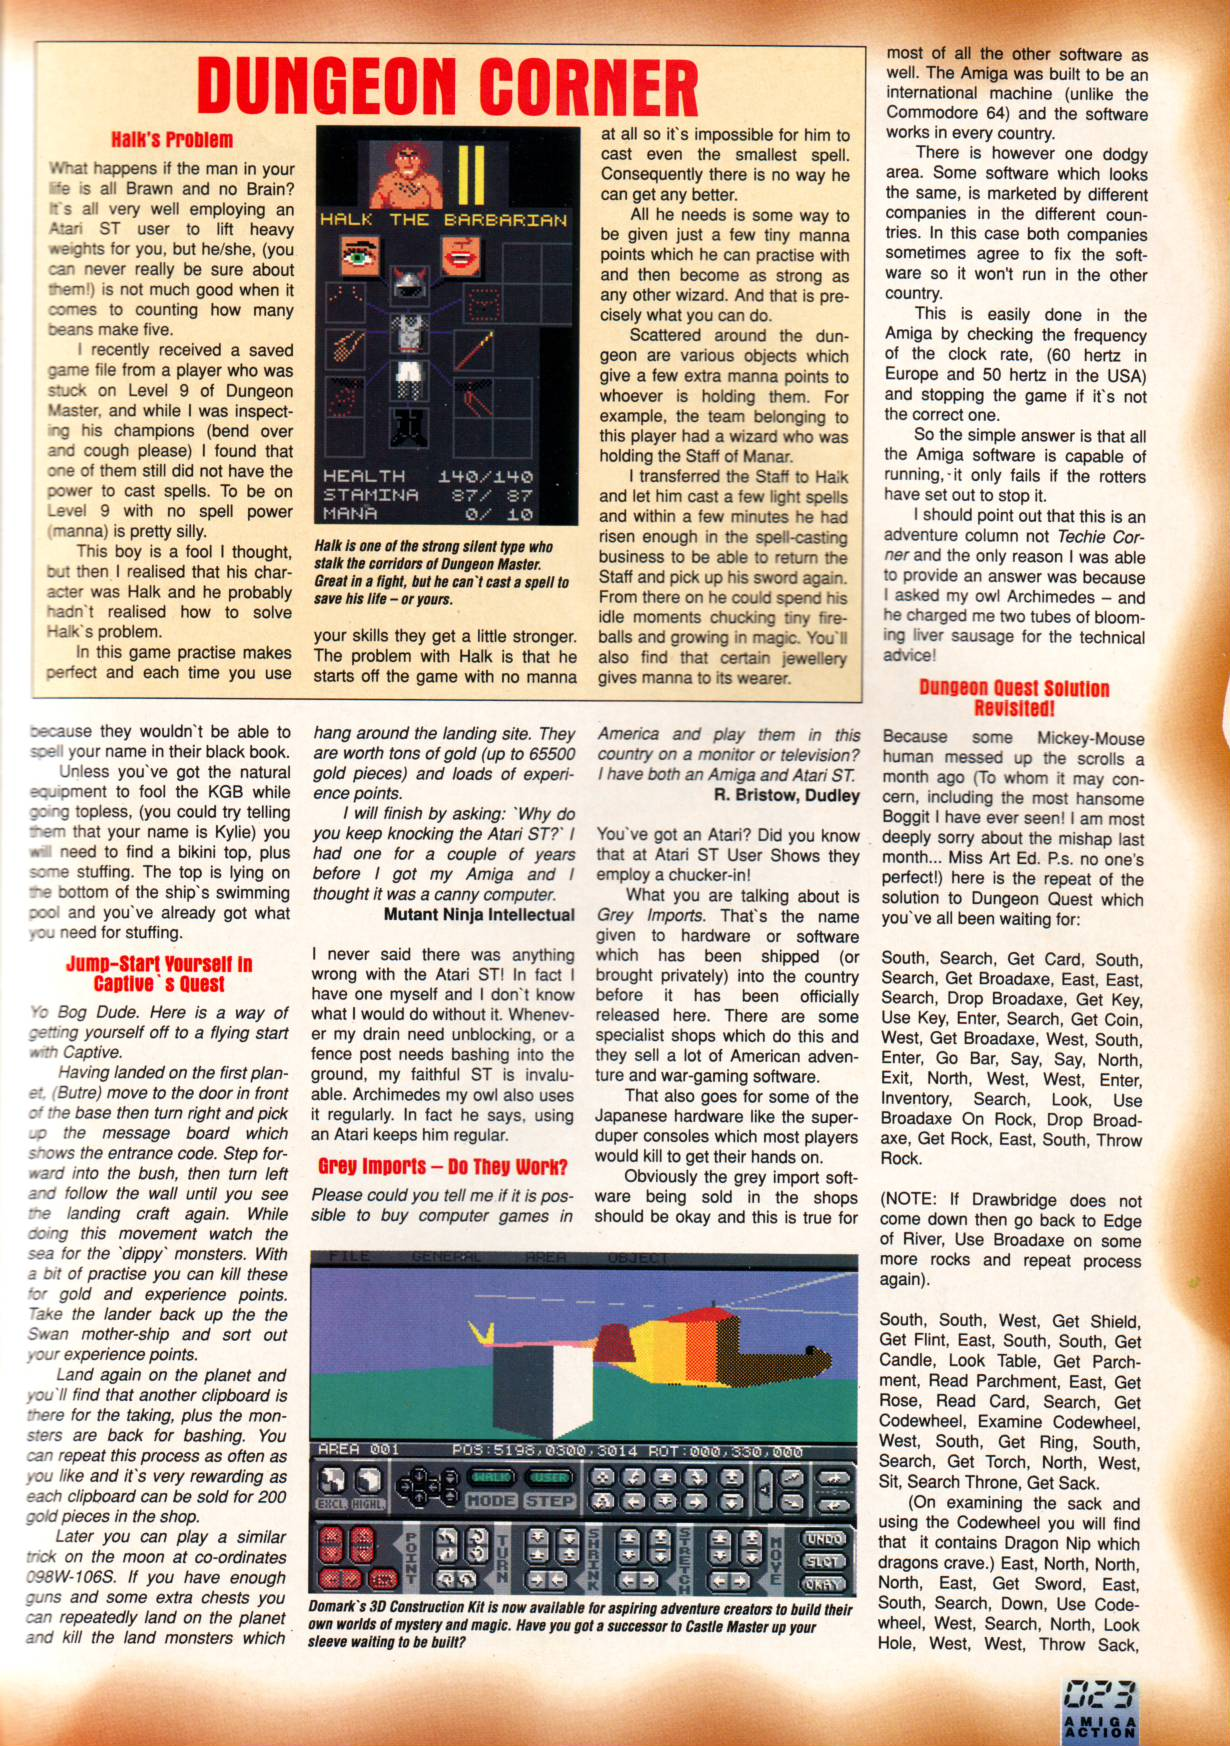 Dungeon Master Hints published in British magazine 'Amiga Action', Issue #22 July 1991, Page 23